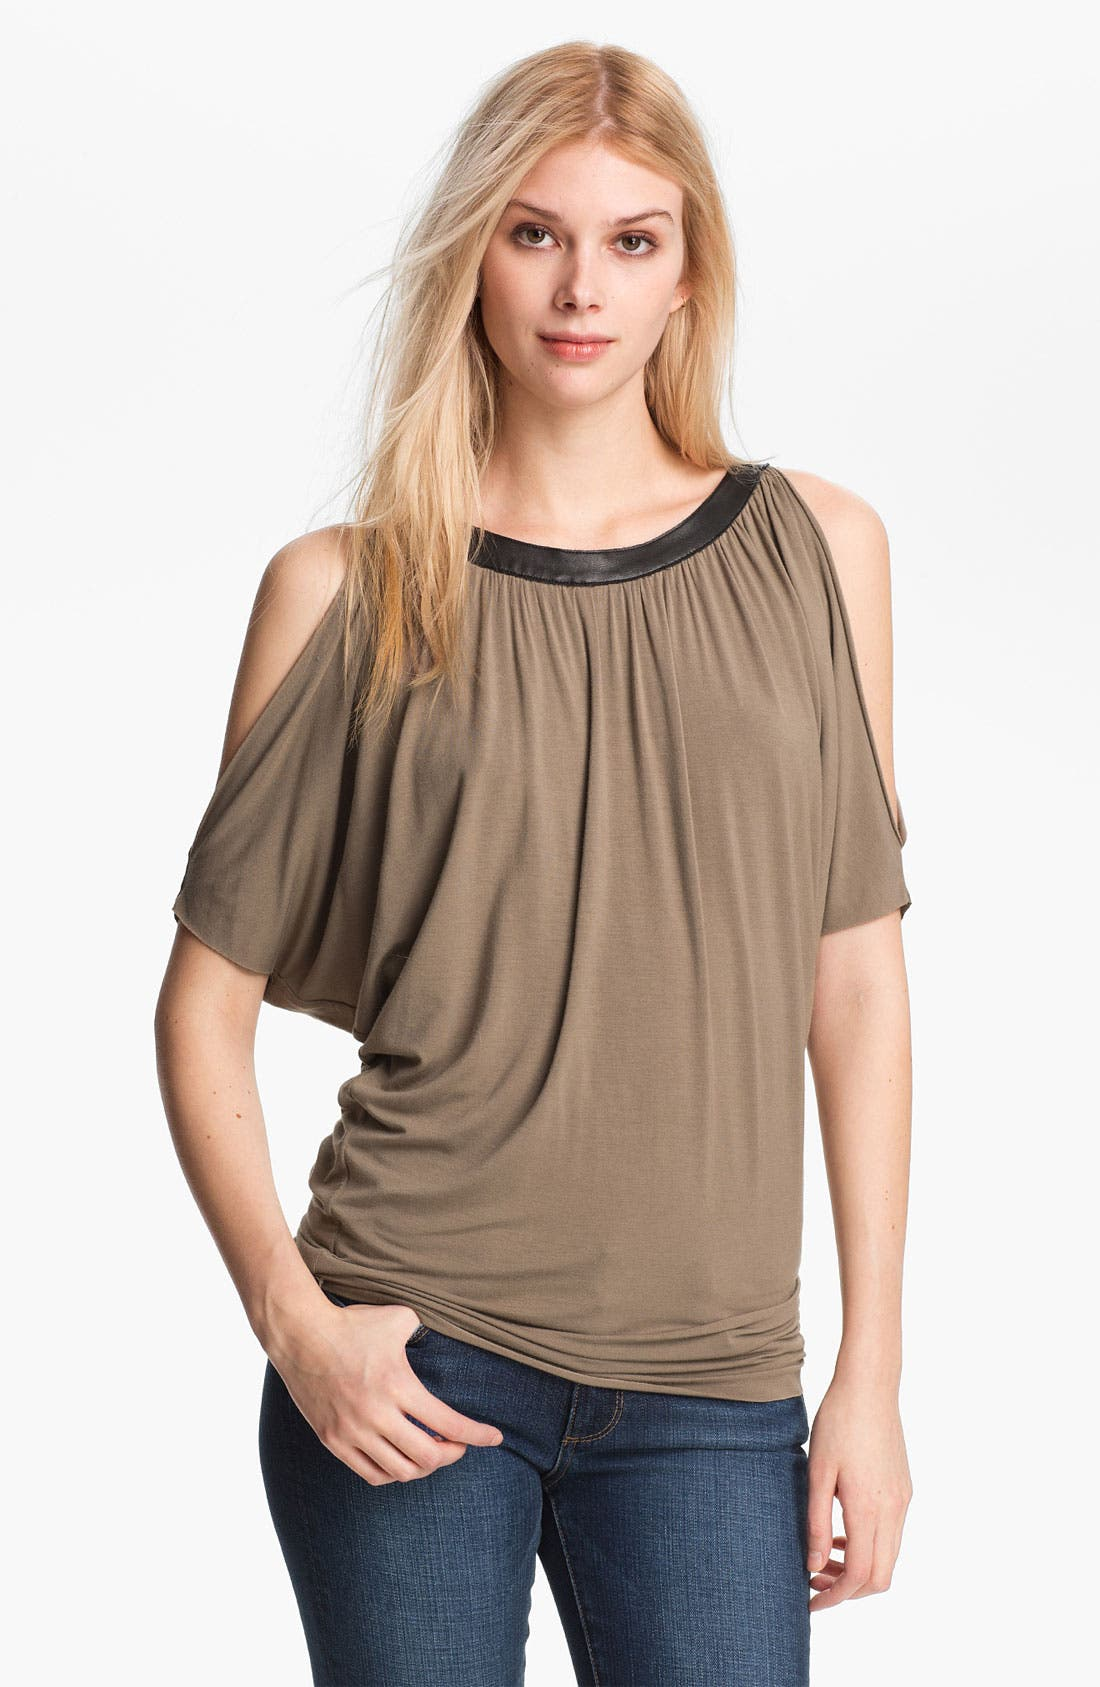 Main Image - Bailey 44 'Picasso' Faux Leather Trim Cold Shoulder Top